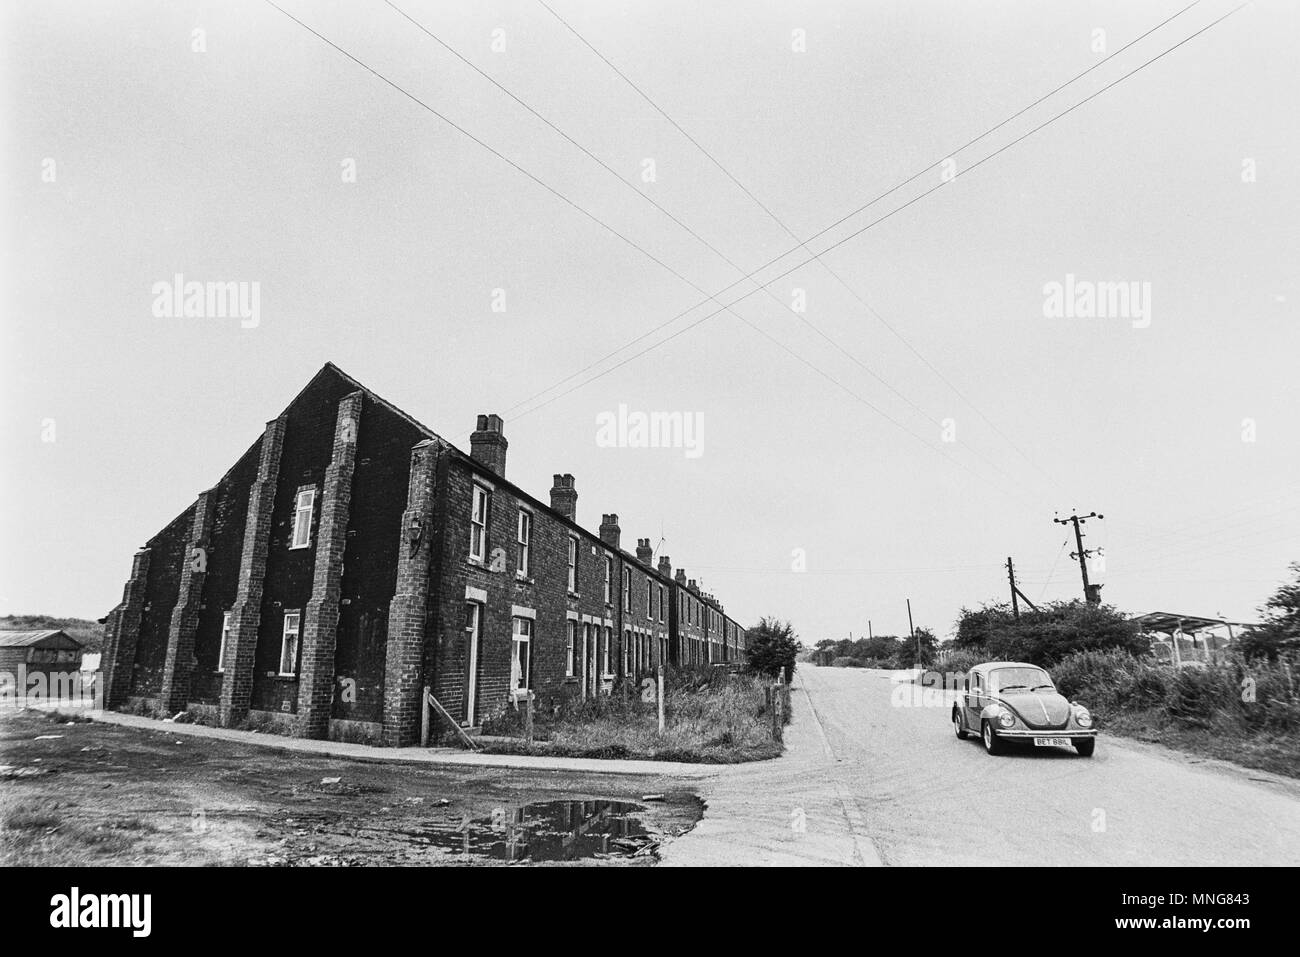 South Yorkshire, 1972 - Magila Cottages, a condemned row of terraced pit houses near Dinnington Colliery, before they were demolished for ind. estate - Stock Image